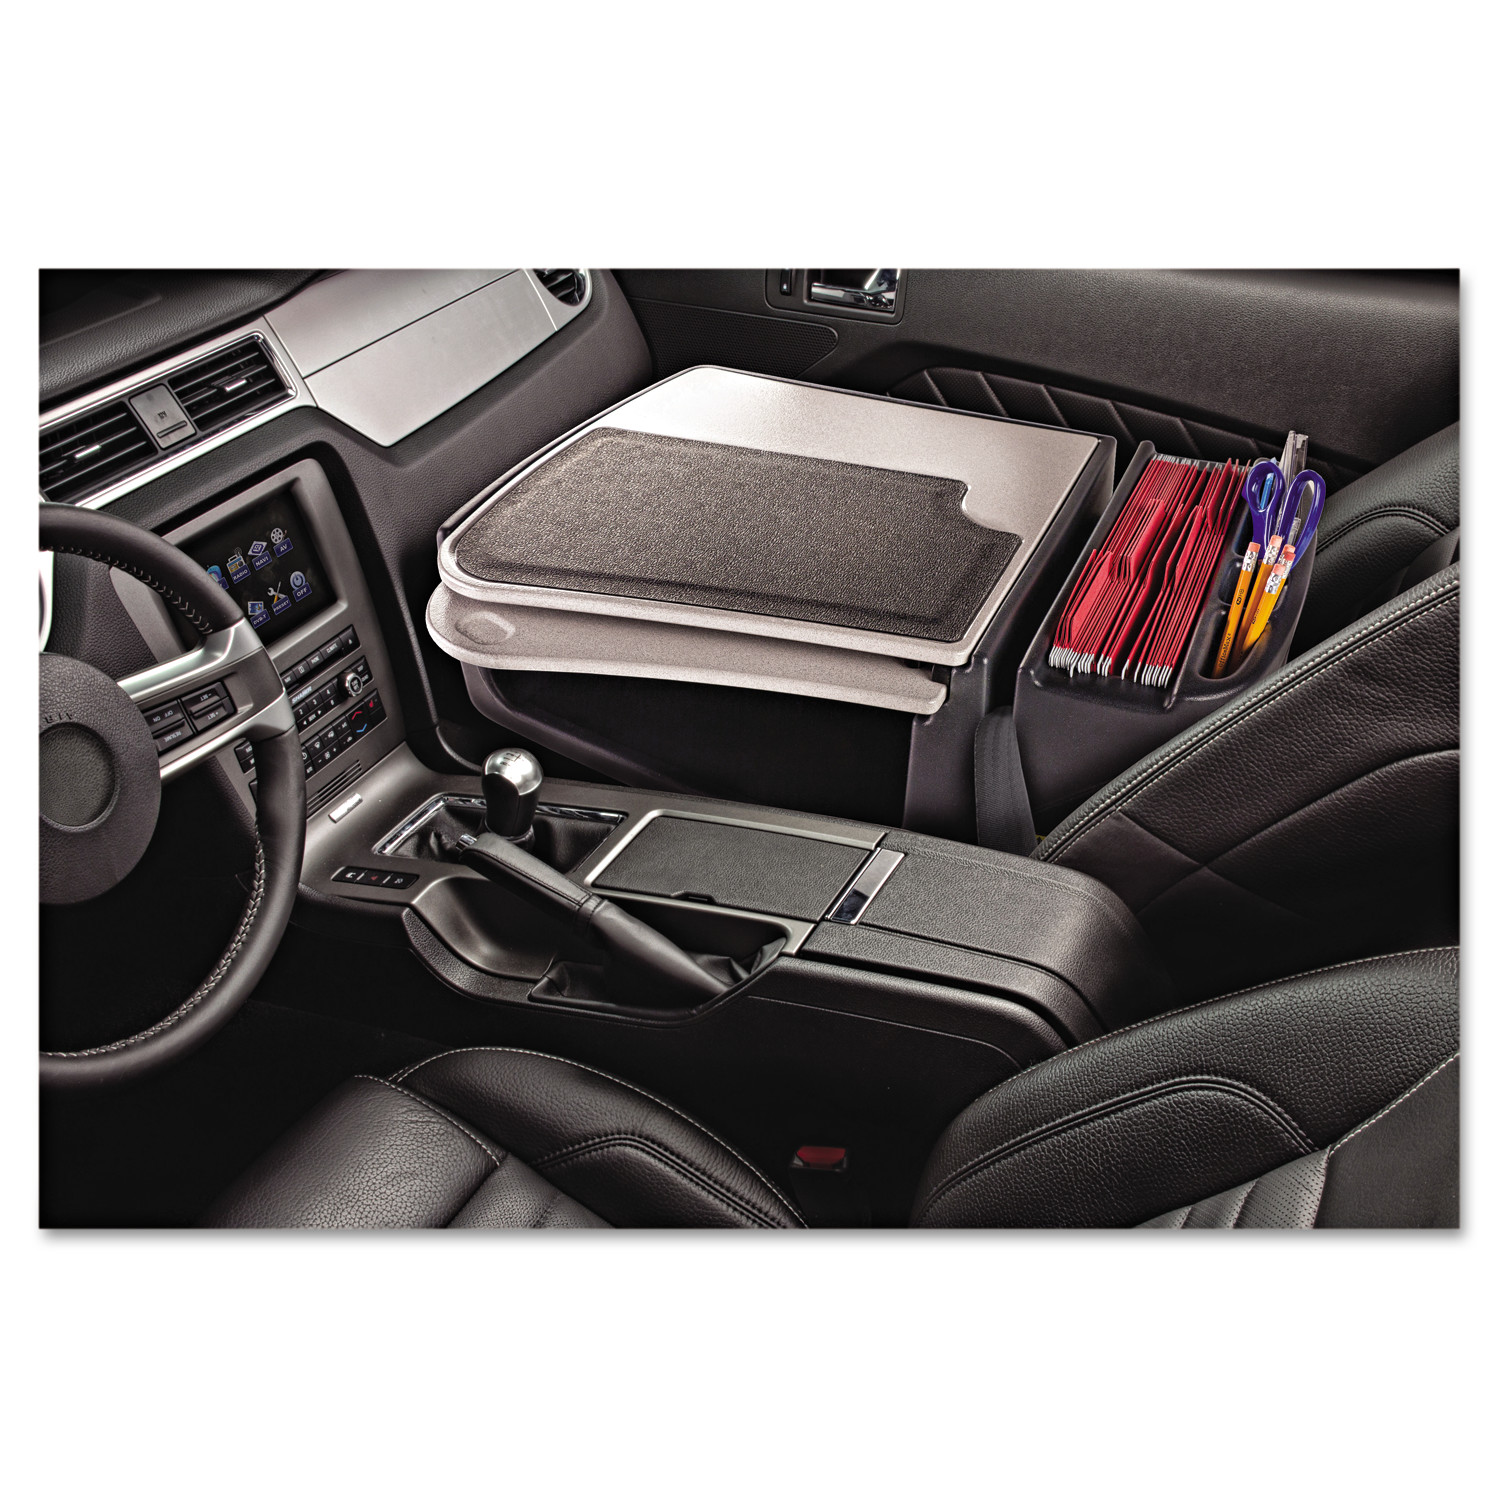 AutoExec GripMaster 01 Auto Desk w/Retractable Writing Surface & Supply Organizer, Gray